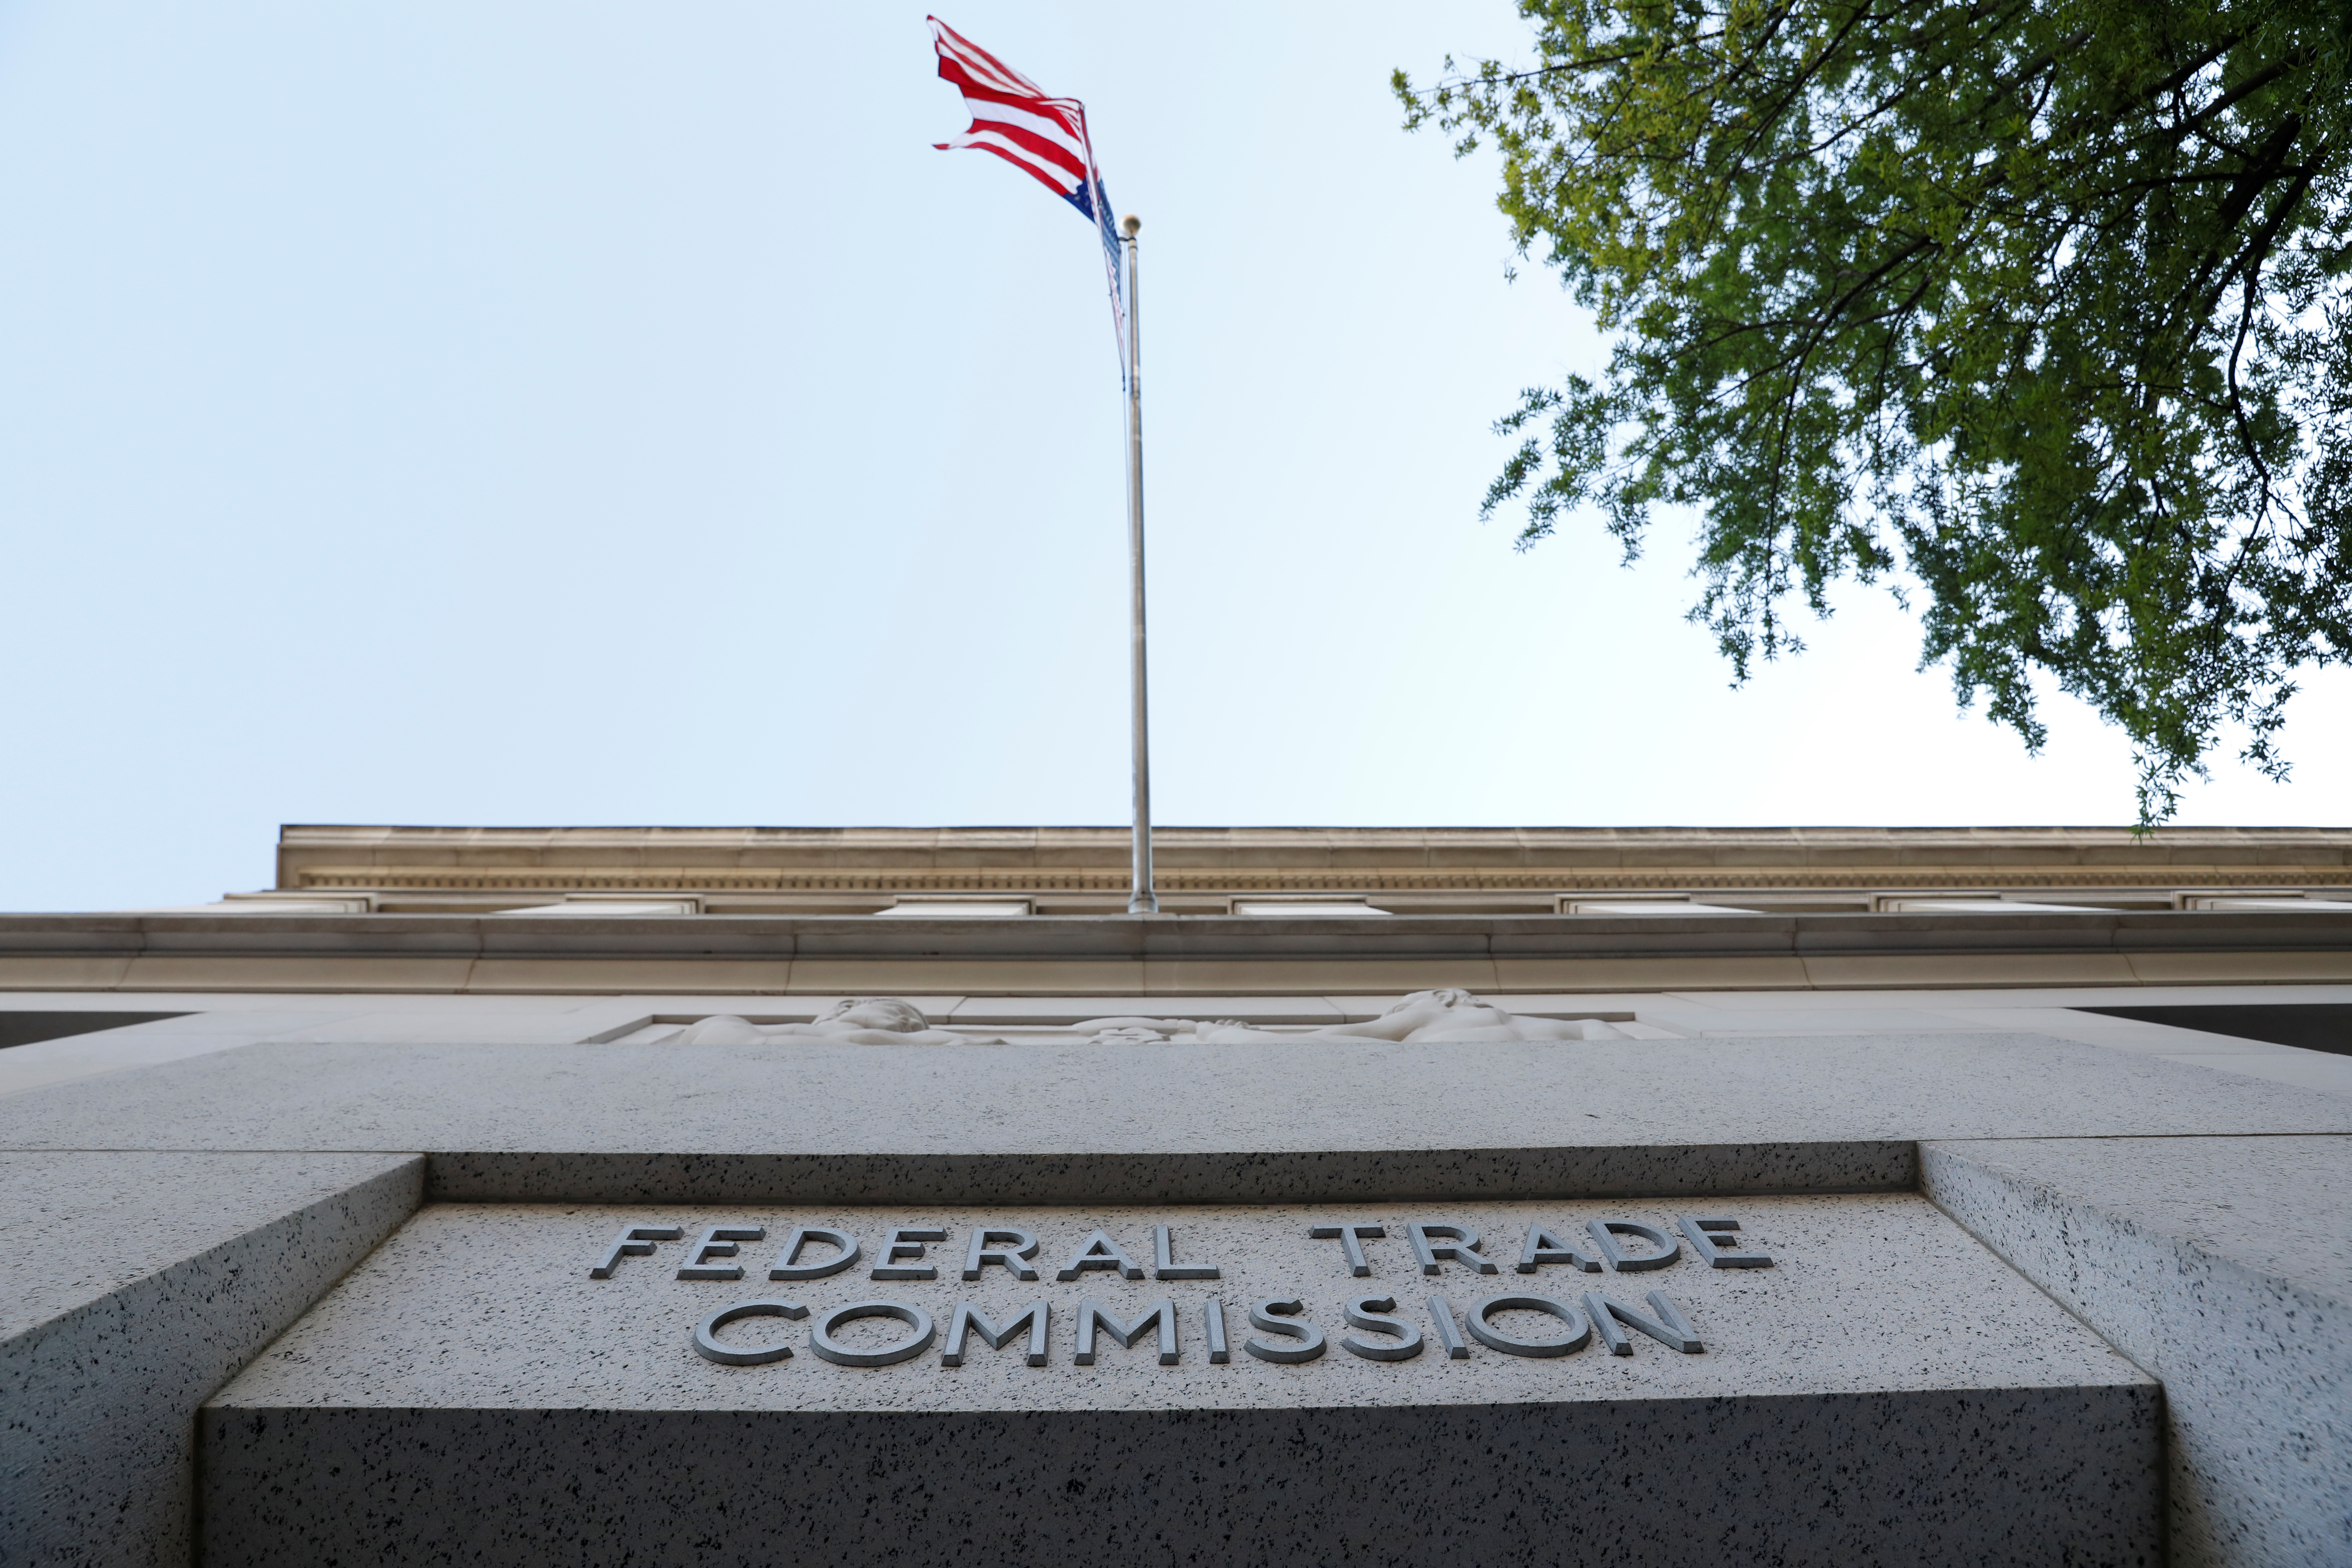 Signage is seen at the Federal Trade Commission headquarters in Washington, D.C., August 29, 2020. REUTERS/Andrew Kelly